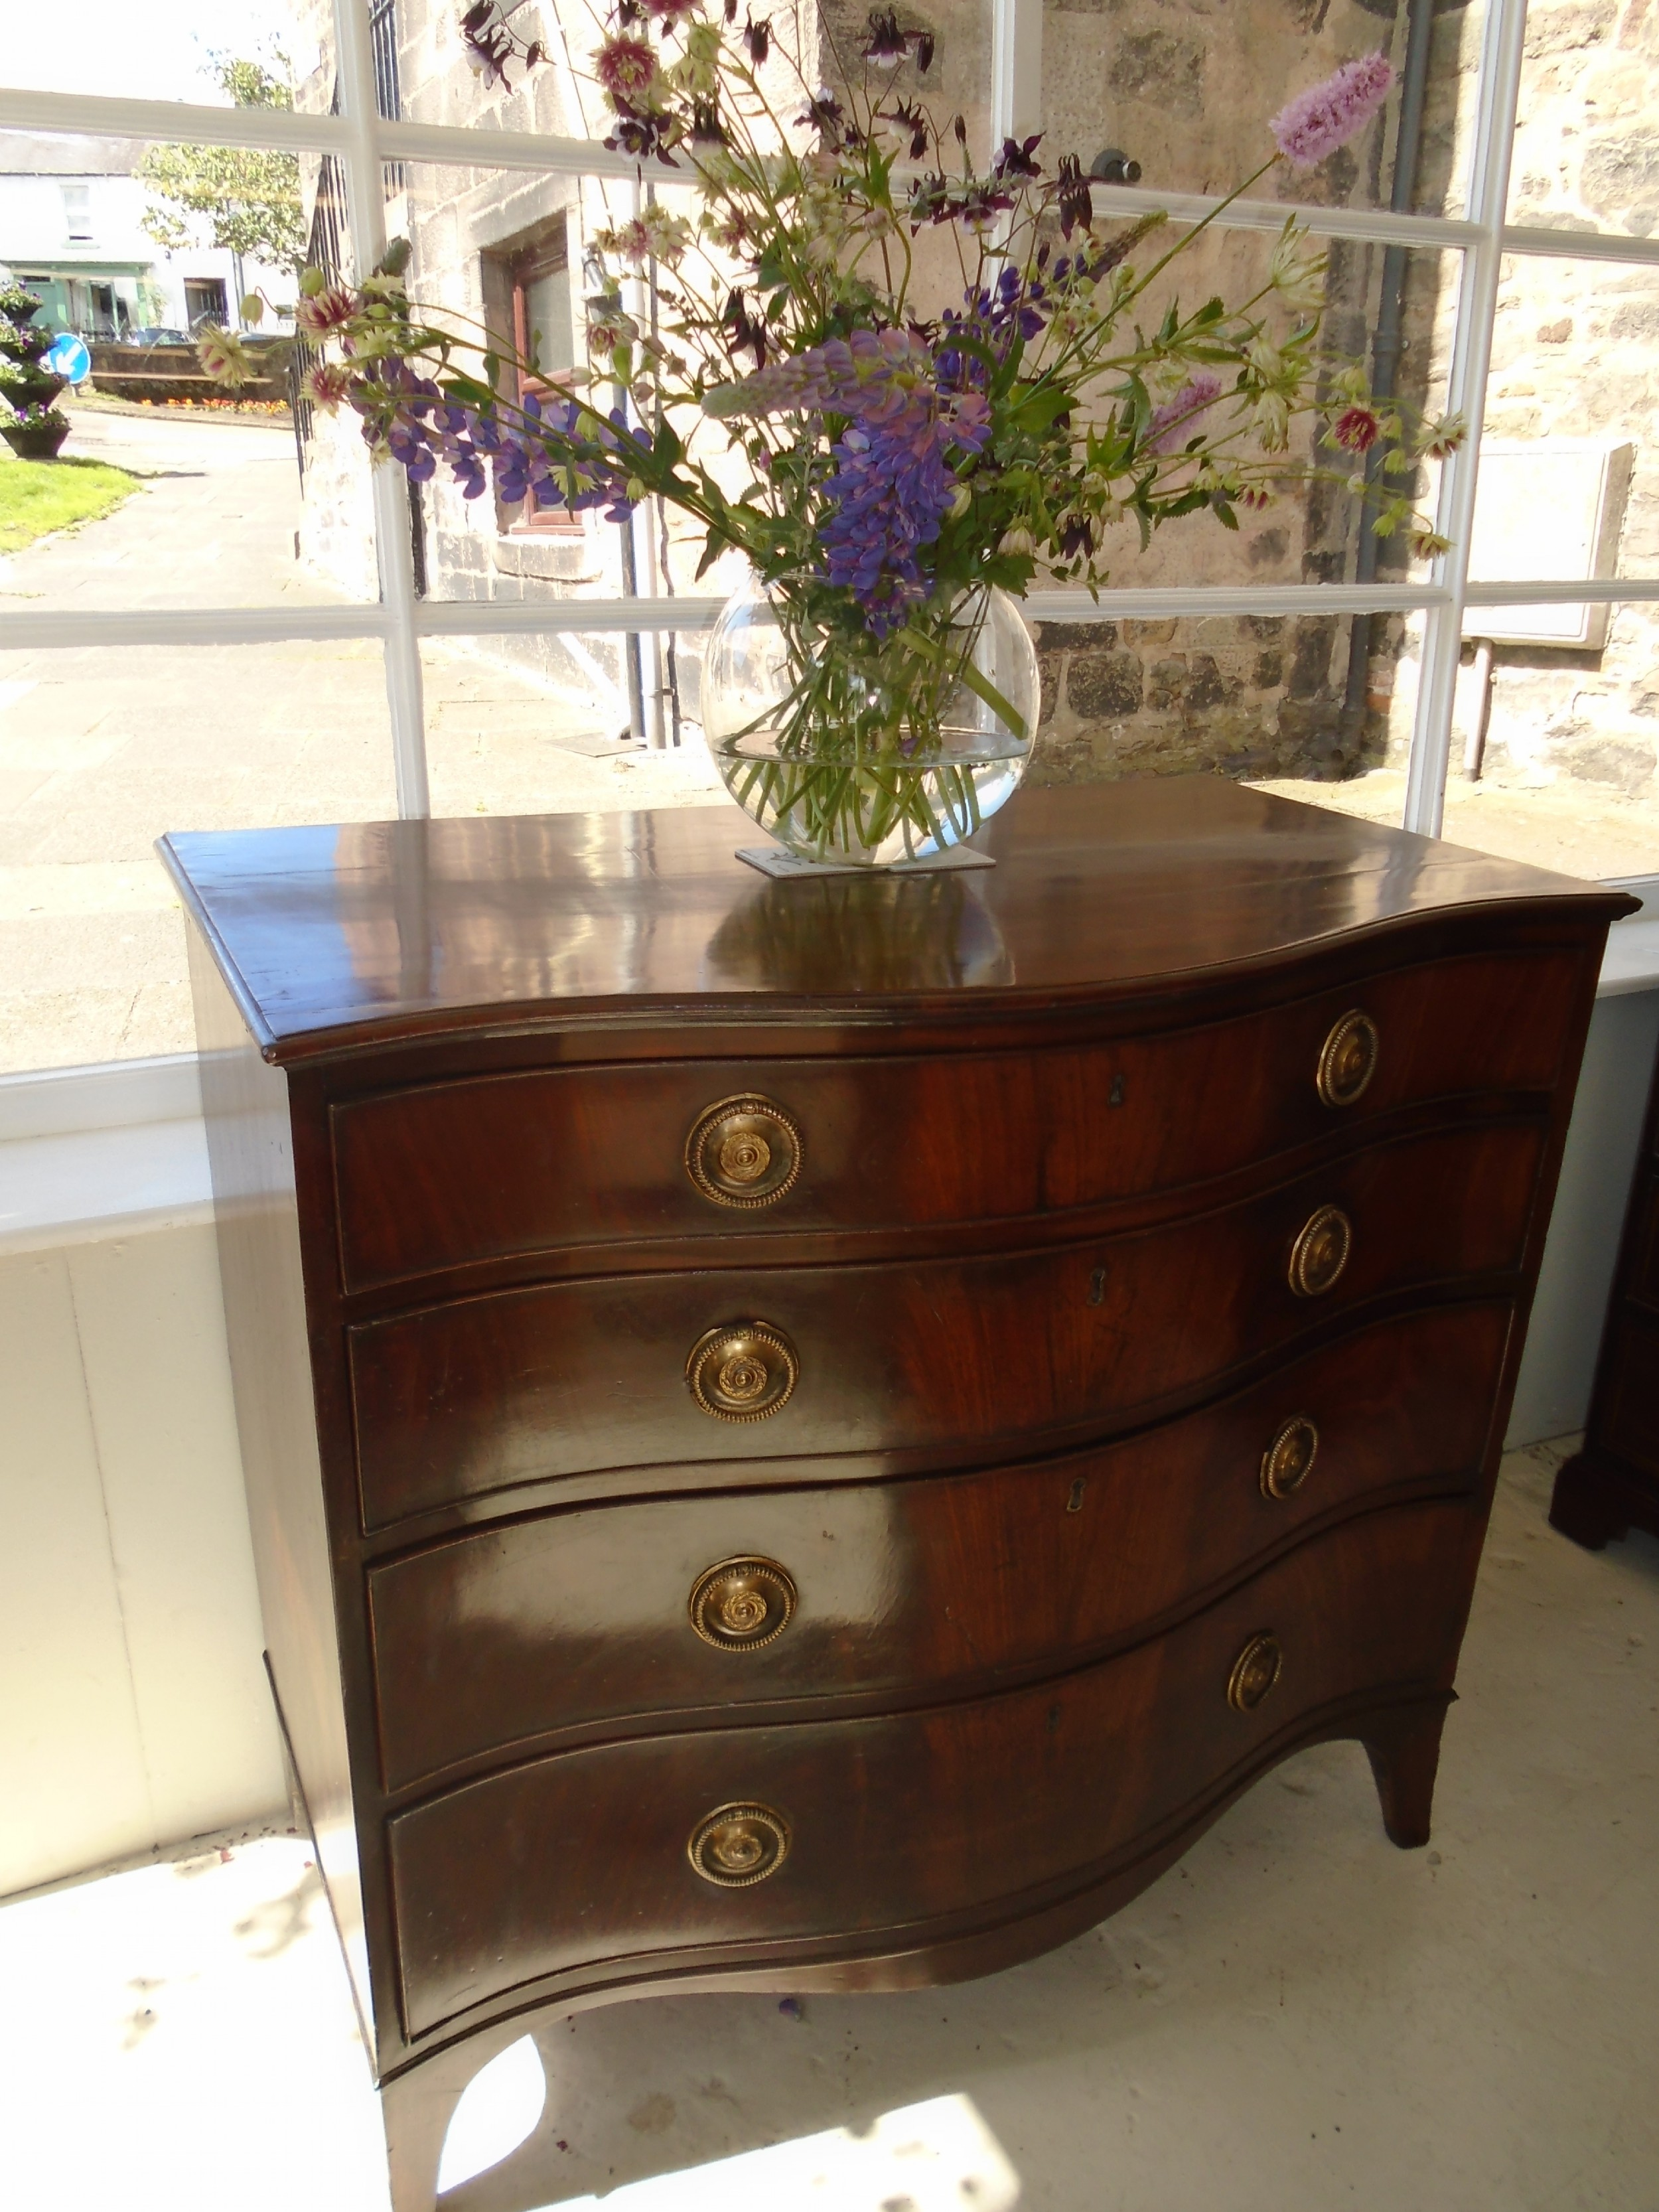 18th century serpentine chest of drawers